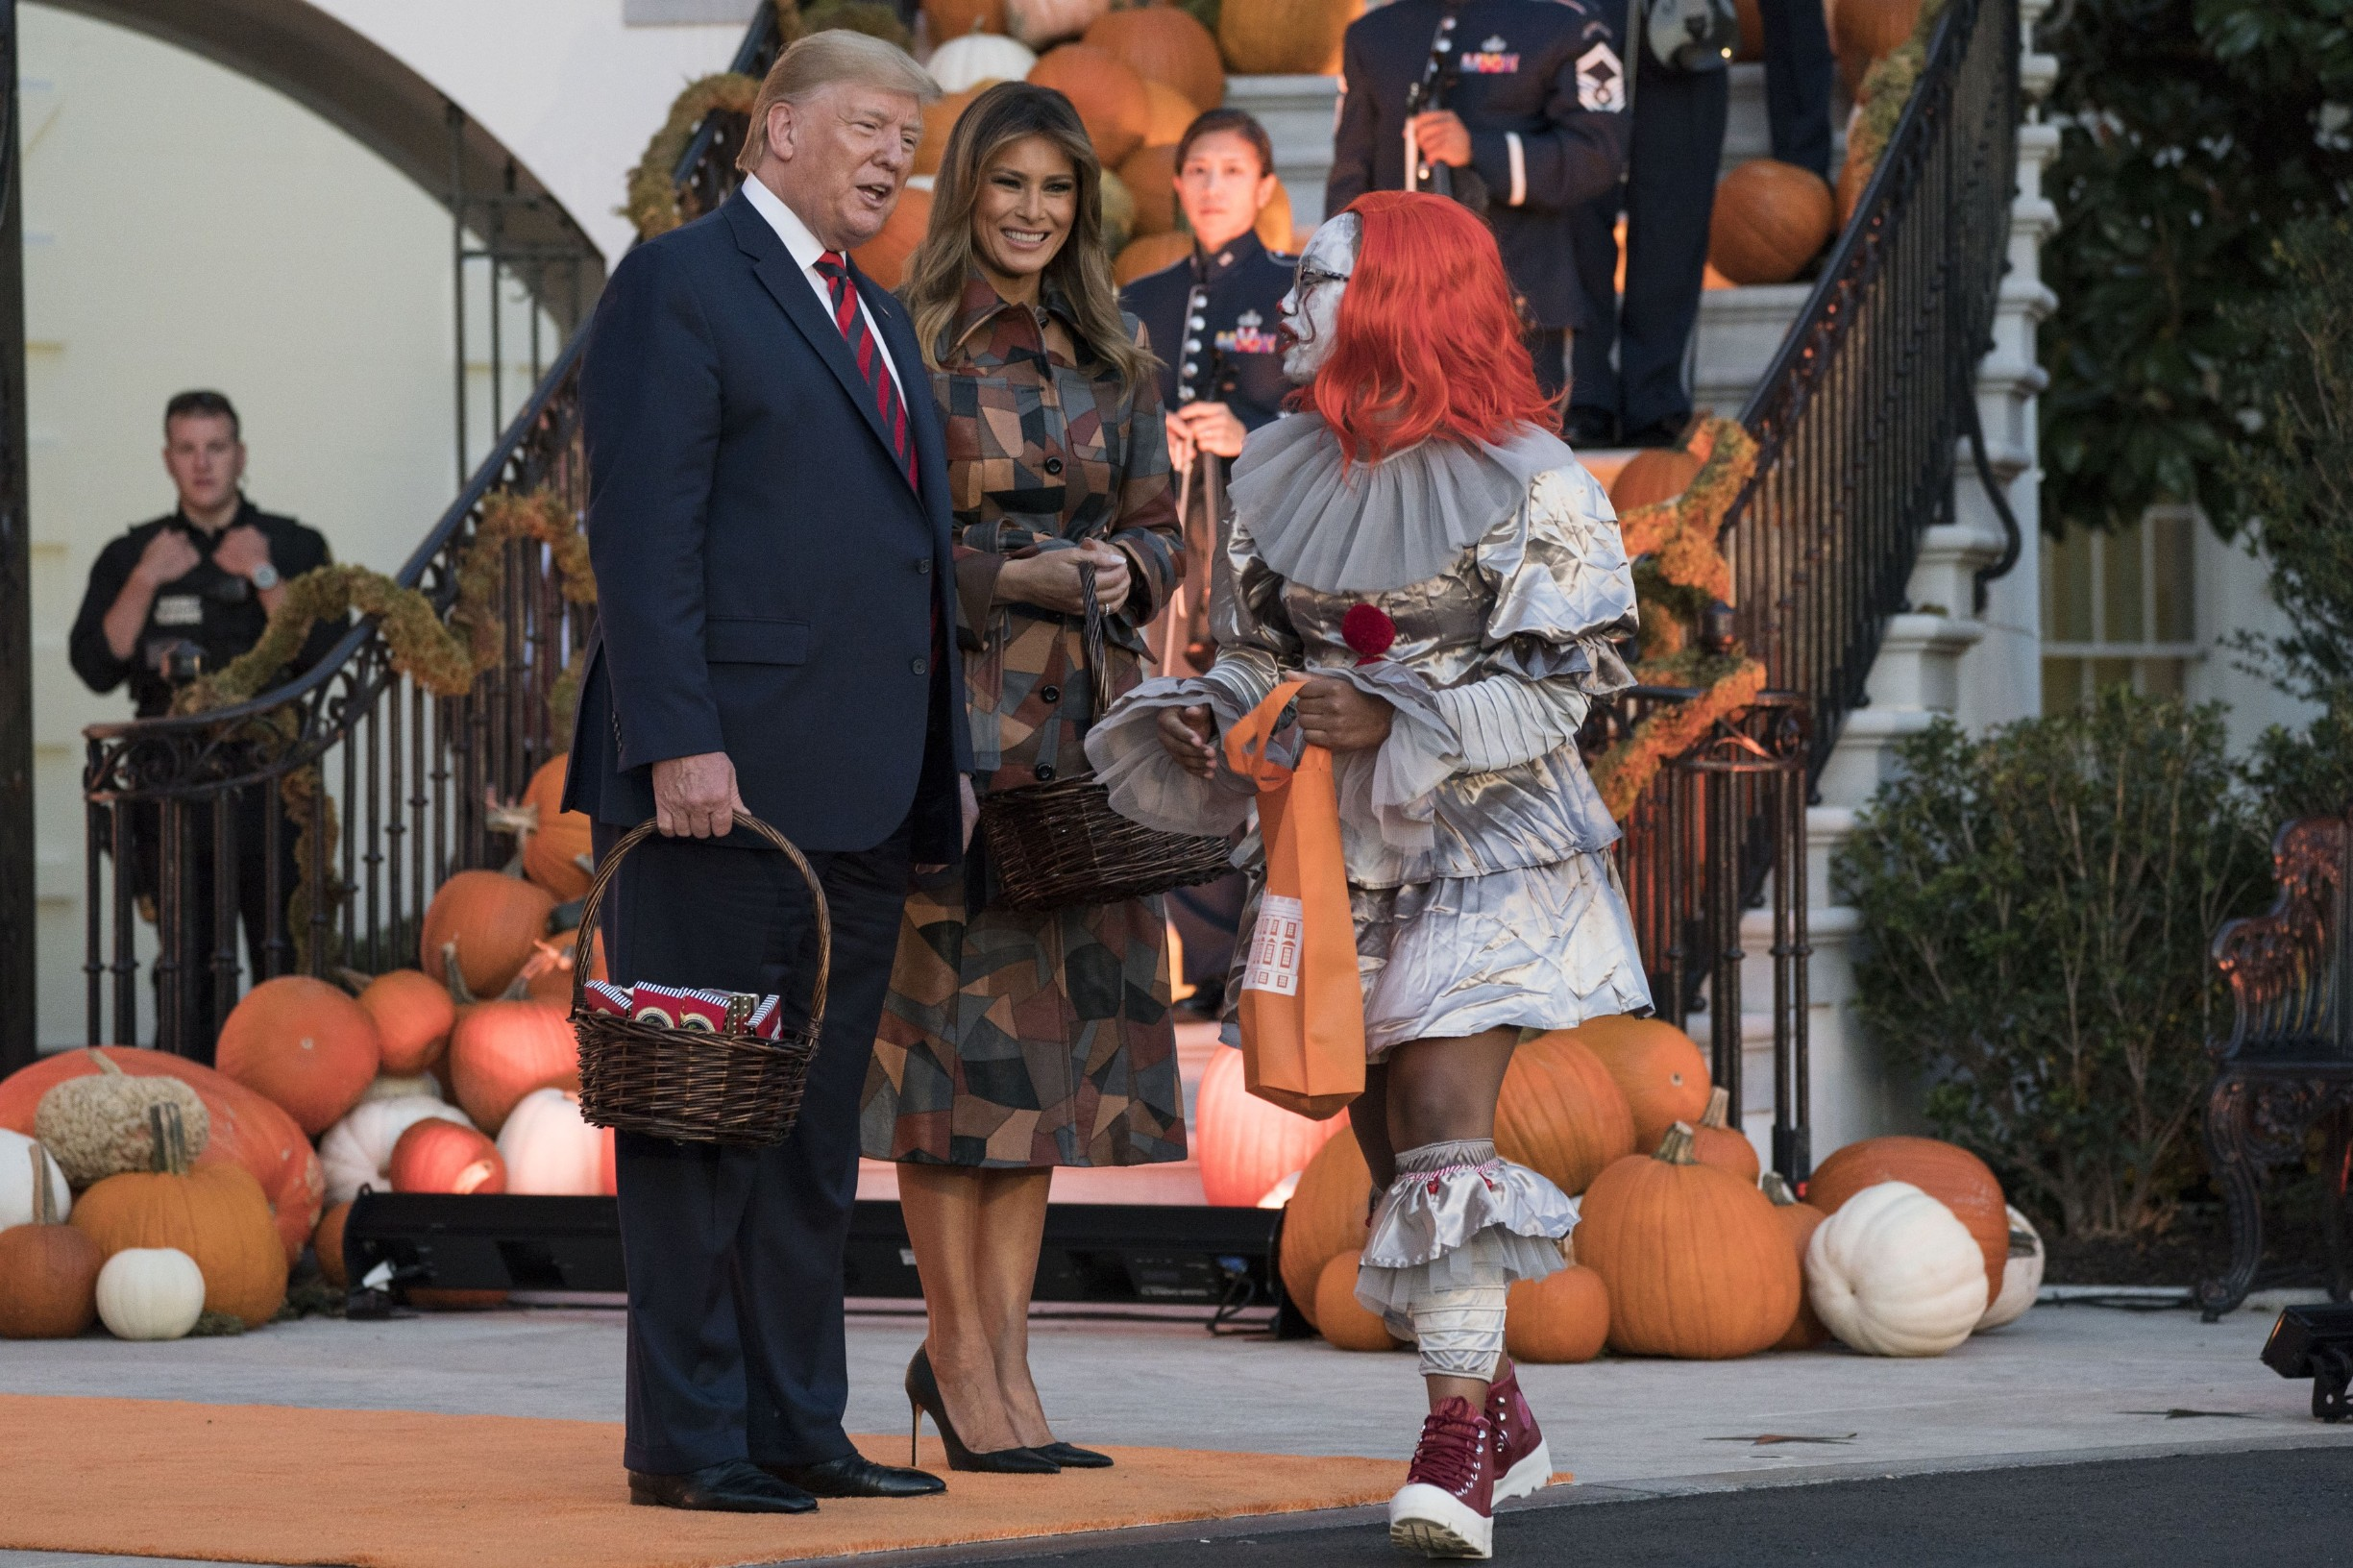 President Donald Trump and first lady Melania Trump participate in a Halloween celebration on the South Portico of the White House in Washington, DC on Monday, October 28, 2019.       Photo by /UPI, Image: 479489179, License: Rights-managed, Restrictions: , Model Release: no, Credit line: SARAH SILBIGER / UPI / Profimedia